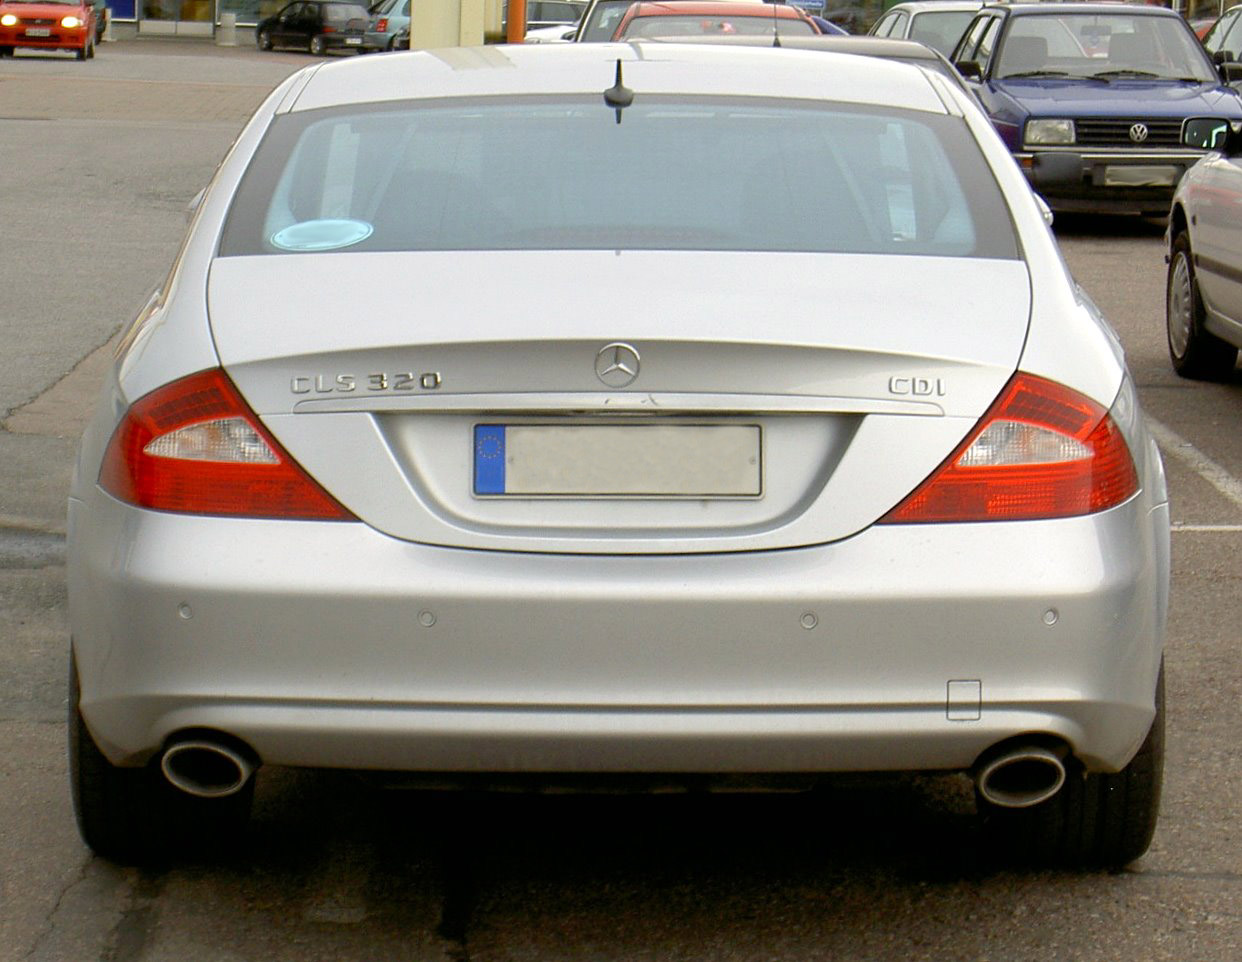 Mercedes-Benz CLS 320 photo 10